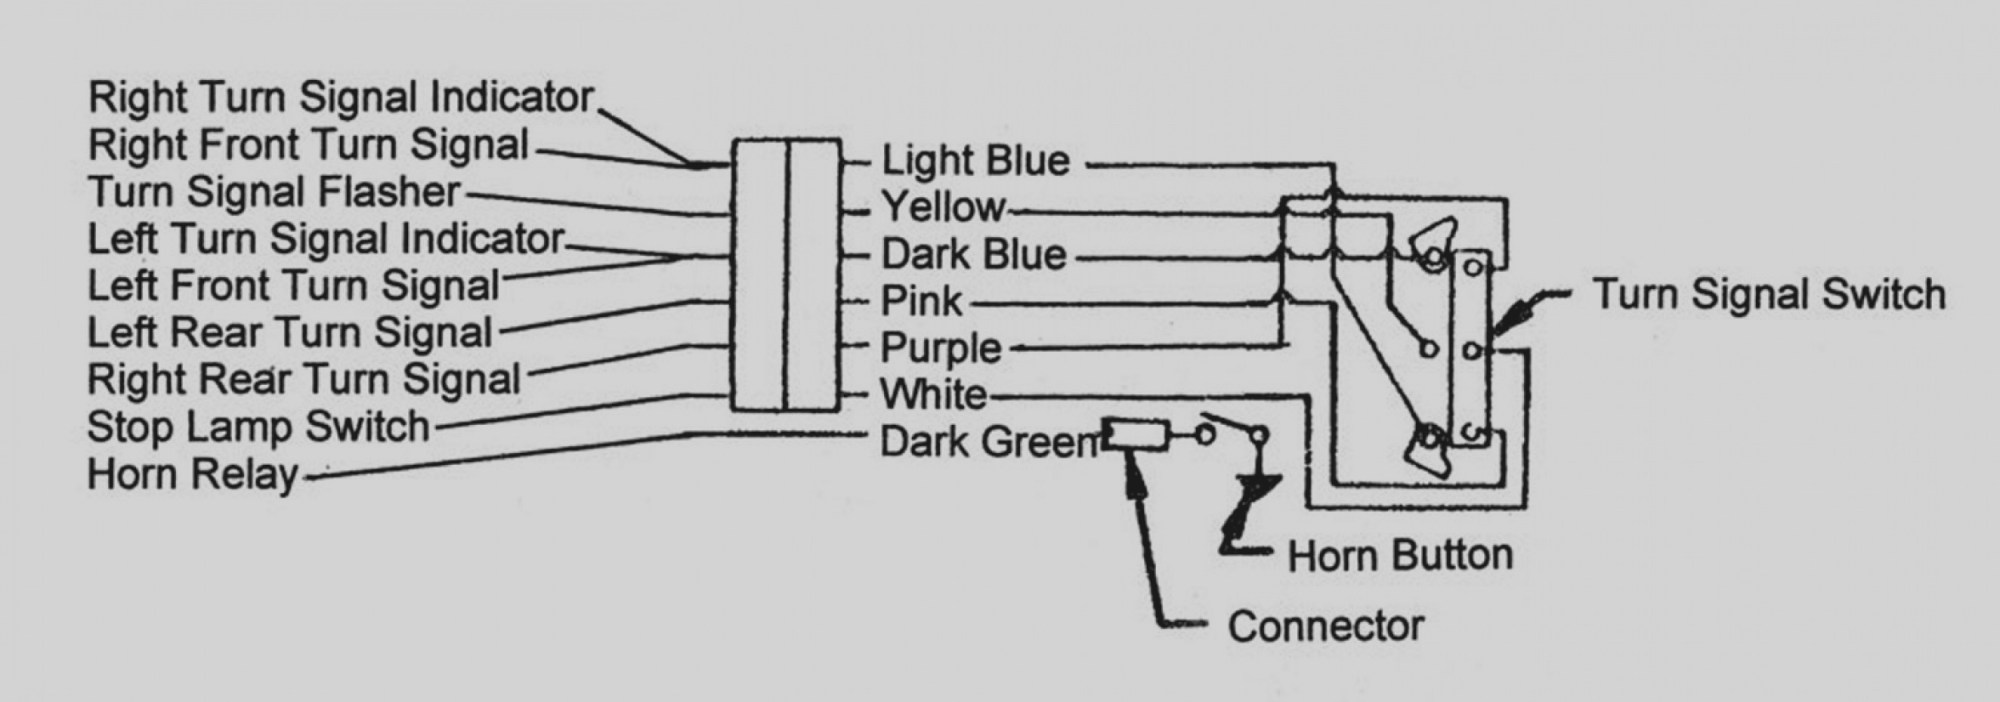 hight resolution of 7 wire turn signal wiring diagram for wiring diagram schema mix 7 wire turn signal switch